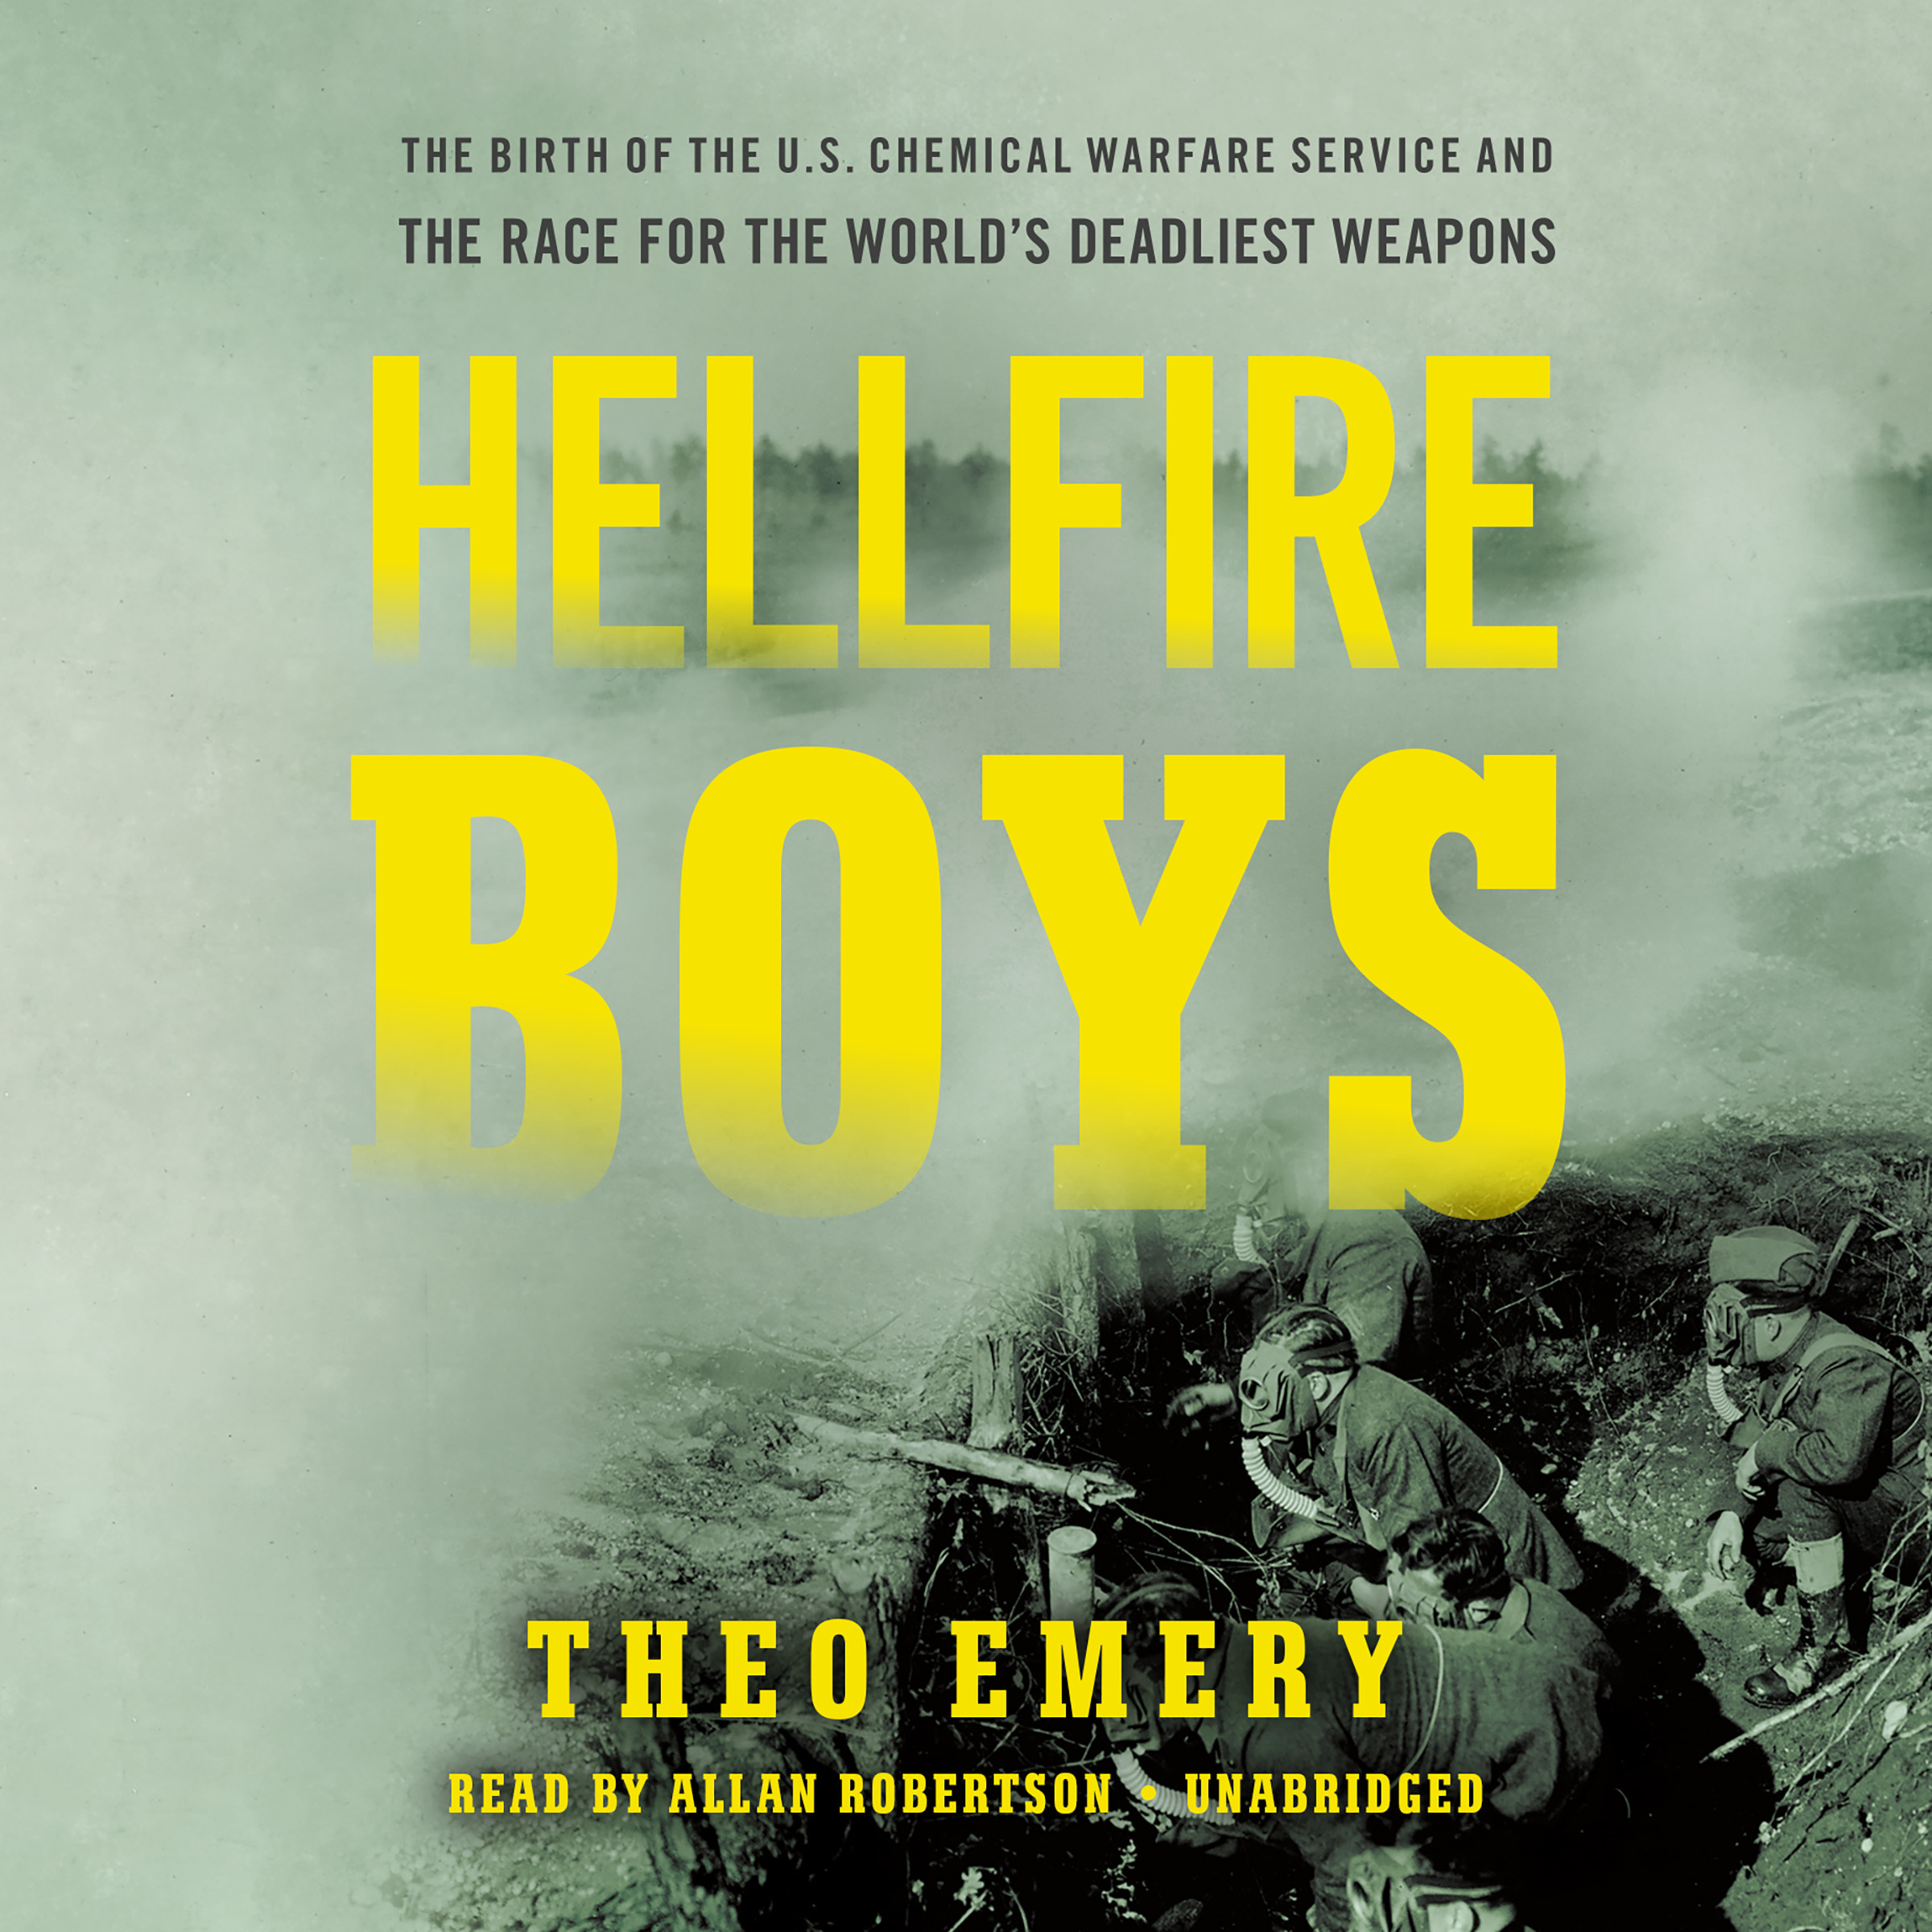 Printable Hellfire Boys: The Birth of the U.S. Chemical Warfare Service and the Race for the World¿s Deadliest Weapons Audiobook Cover Art